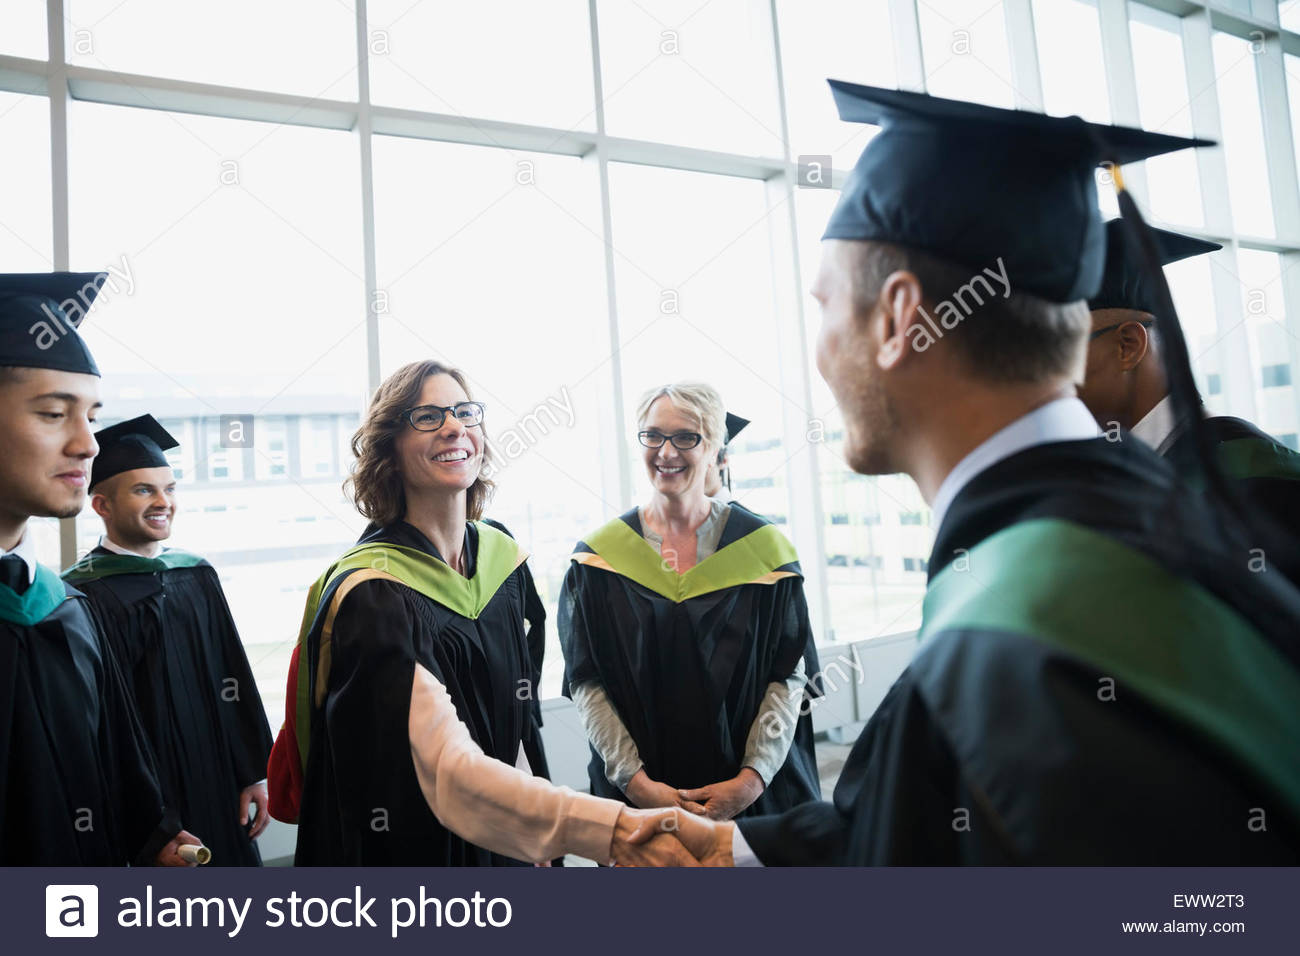 Professor shaking hands with college graduate - Stock Image